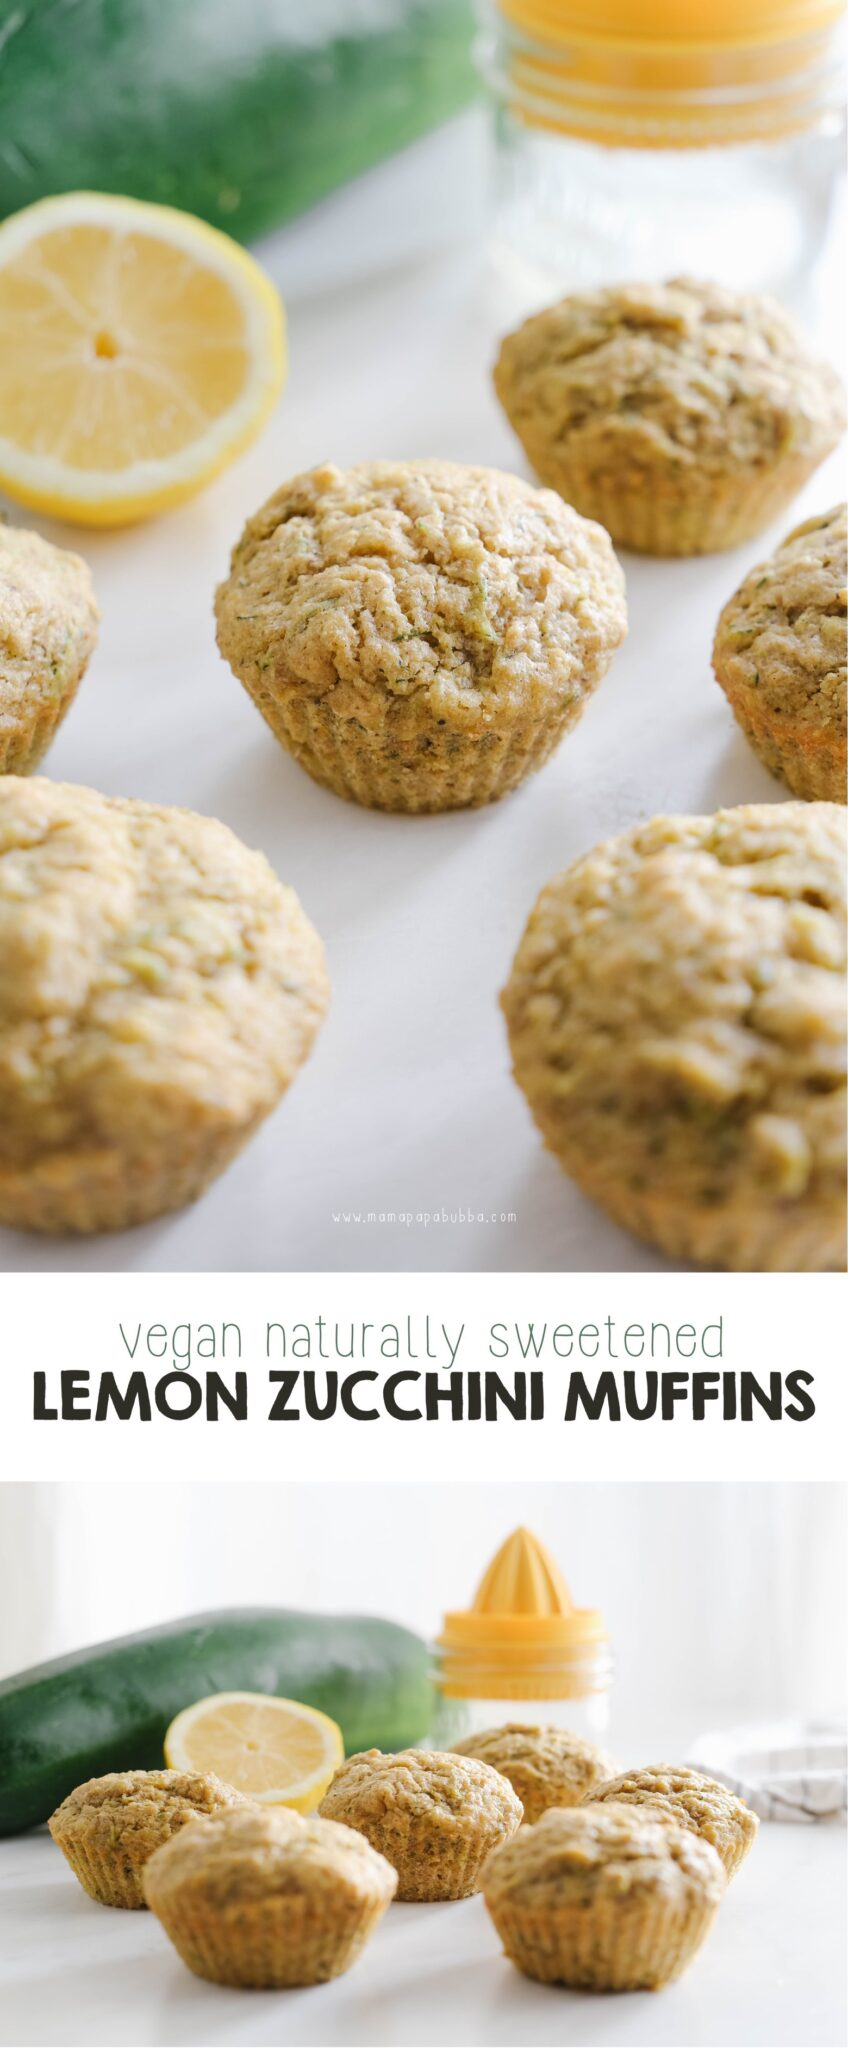 Vegan Naturally Sweetened Lemon Zucchini Muffins | Mama Papa Bubba